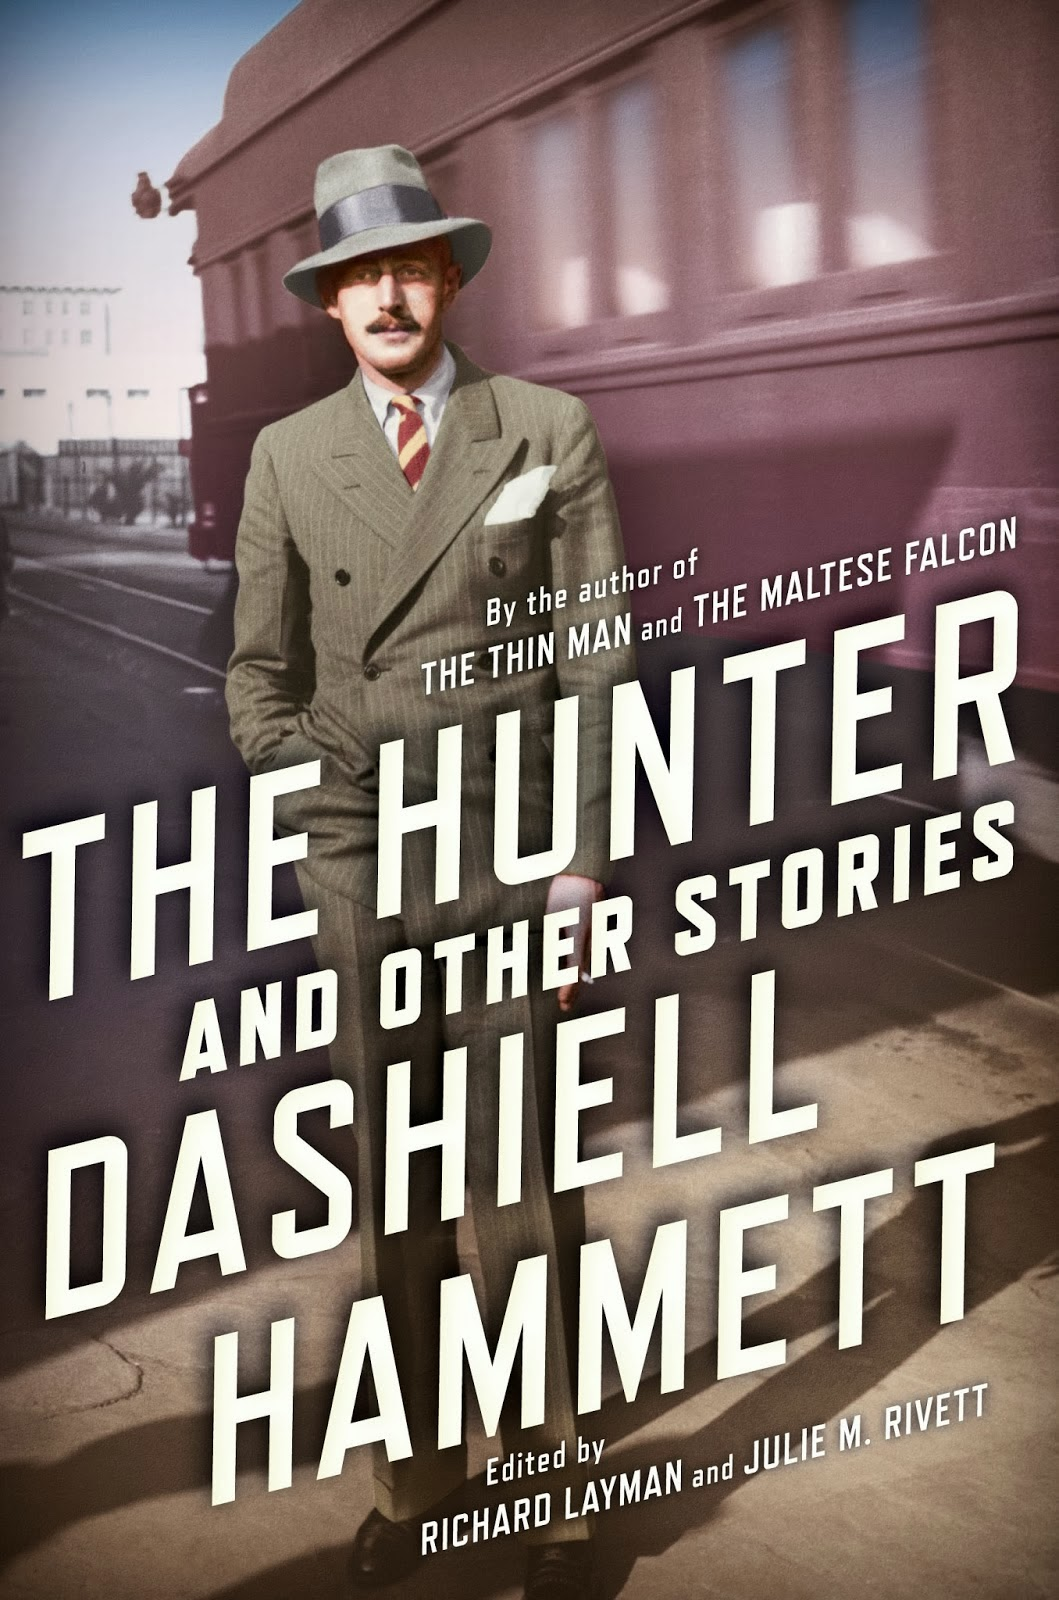 Q&A: New collection of Dashiell Hammett stories required detective work in Ransom Center's collection